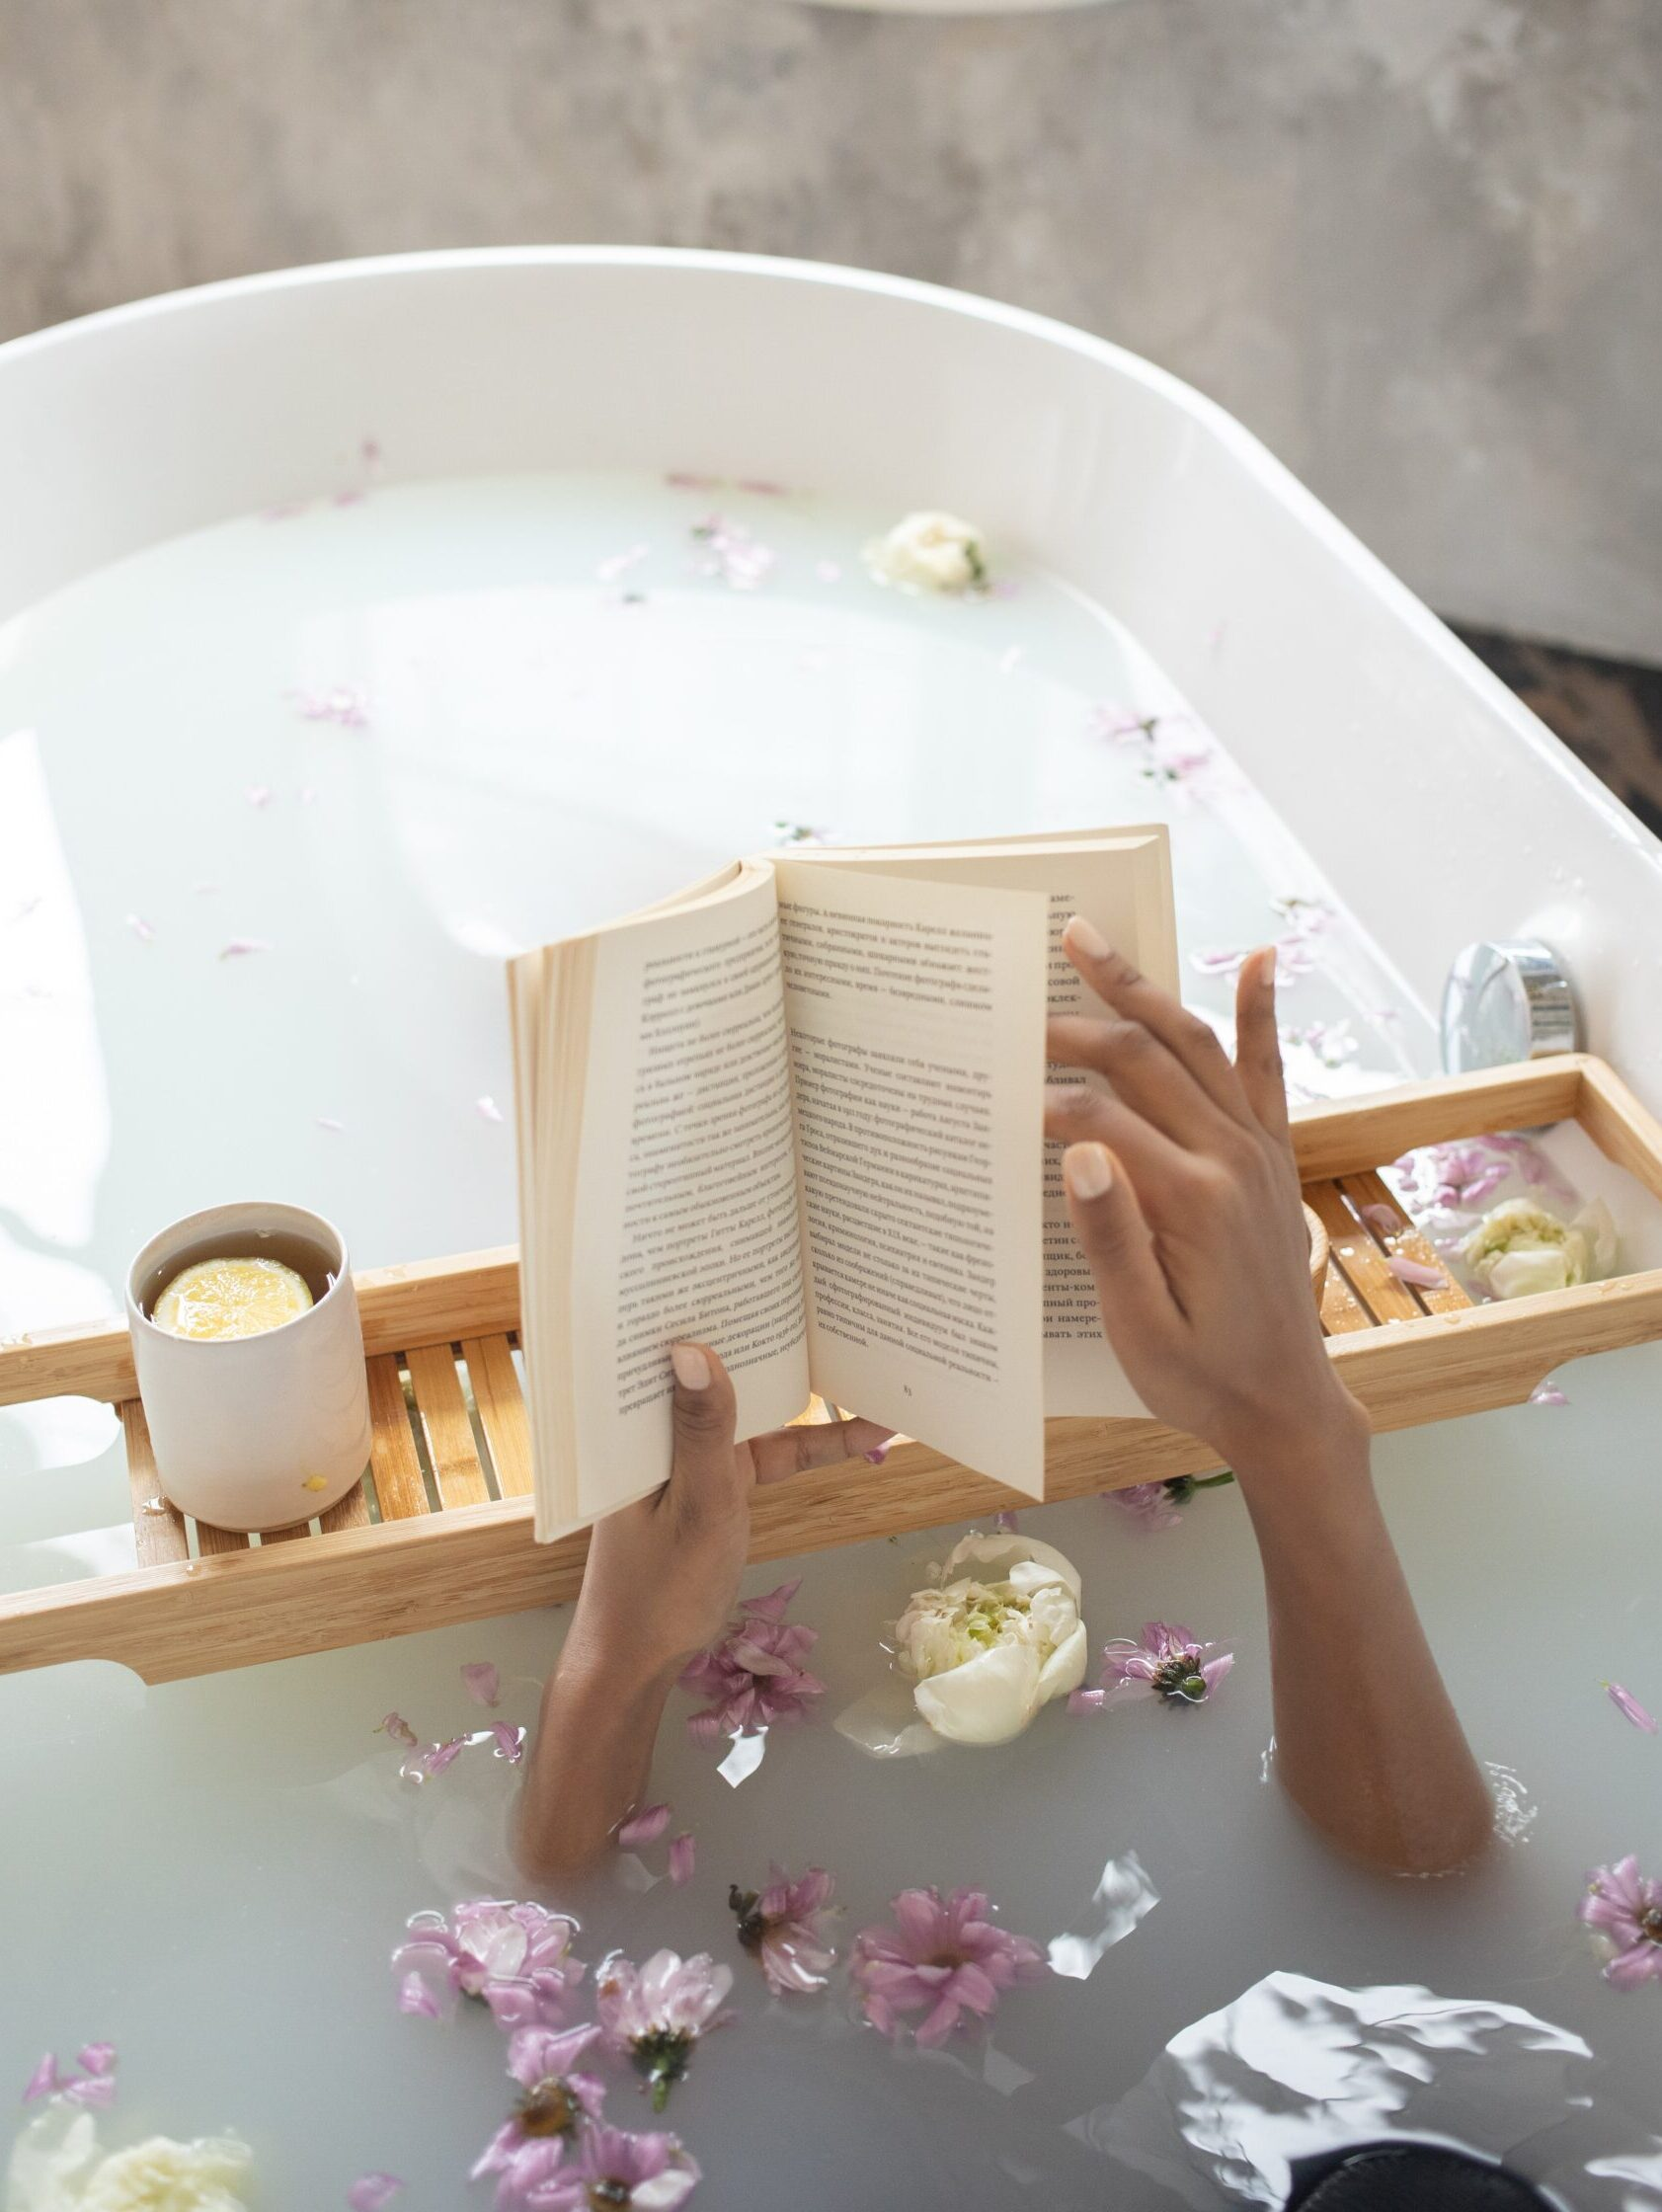 bathtub filled with milky colored water and flower petals, with 2 hands holding a book over a wooden rack holding a candle AskKait: Which Books Have Characters That Use They/Them Pronouns? Passion by Kait